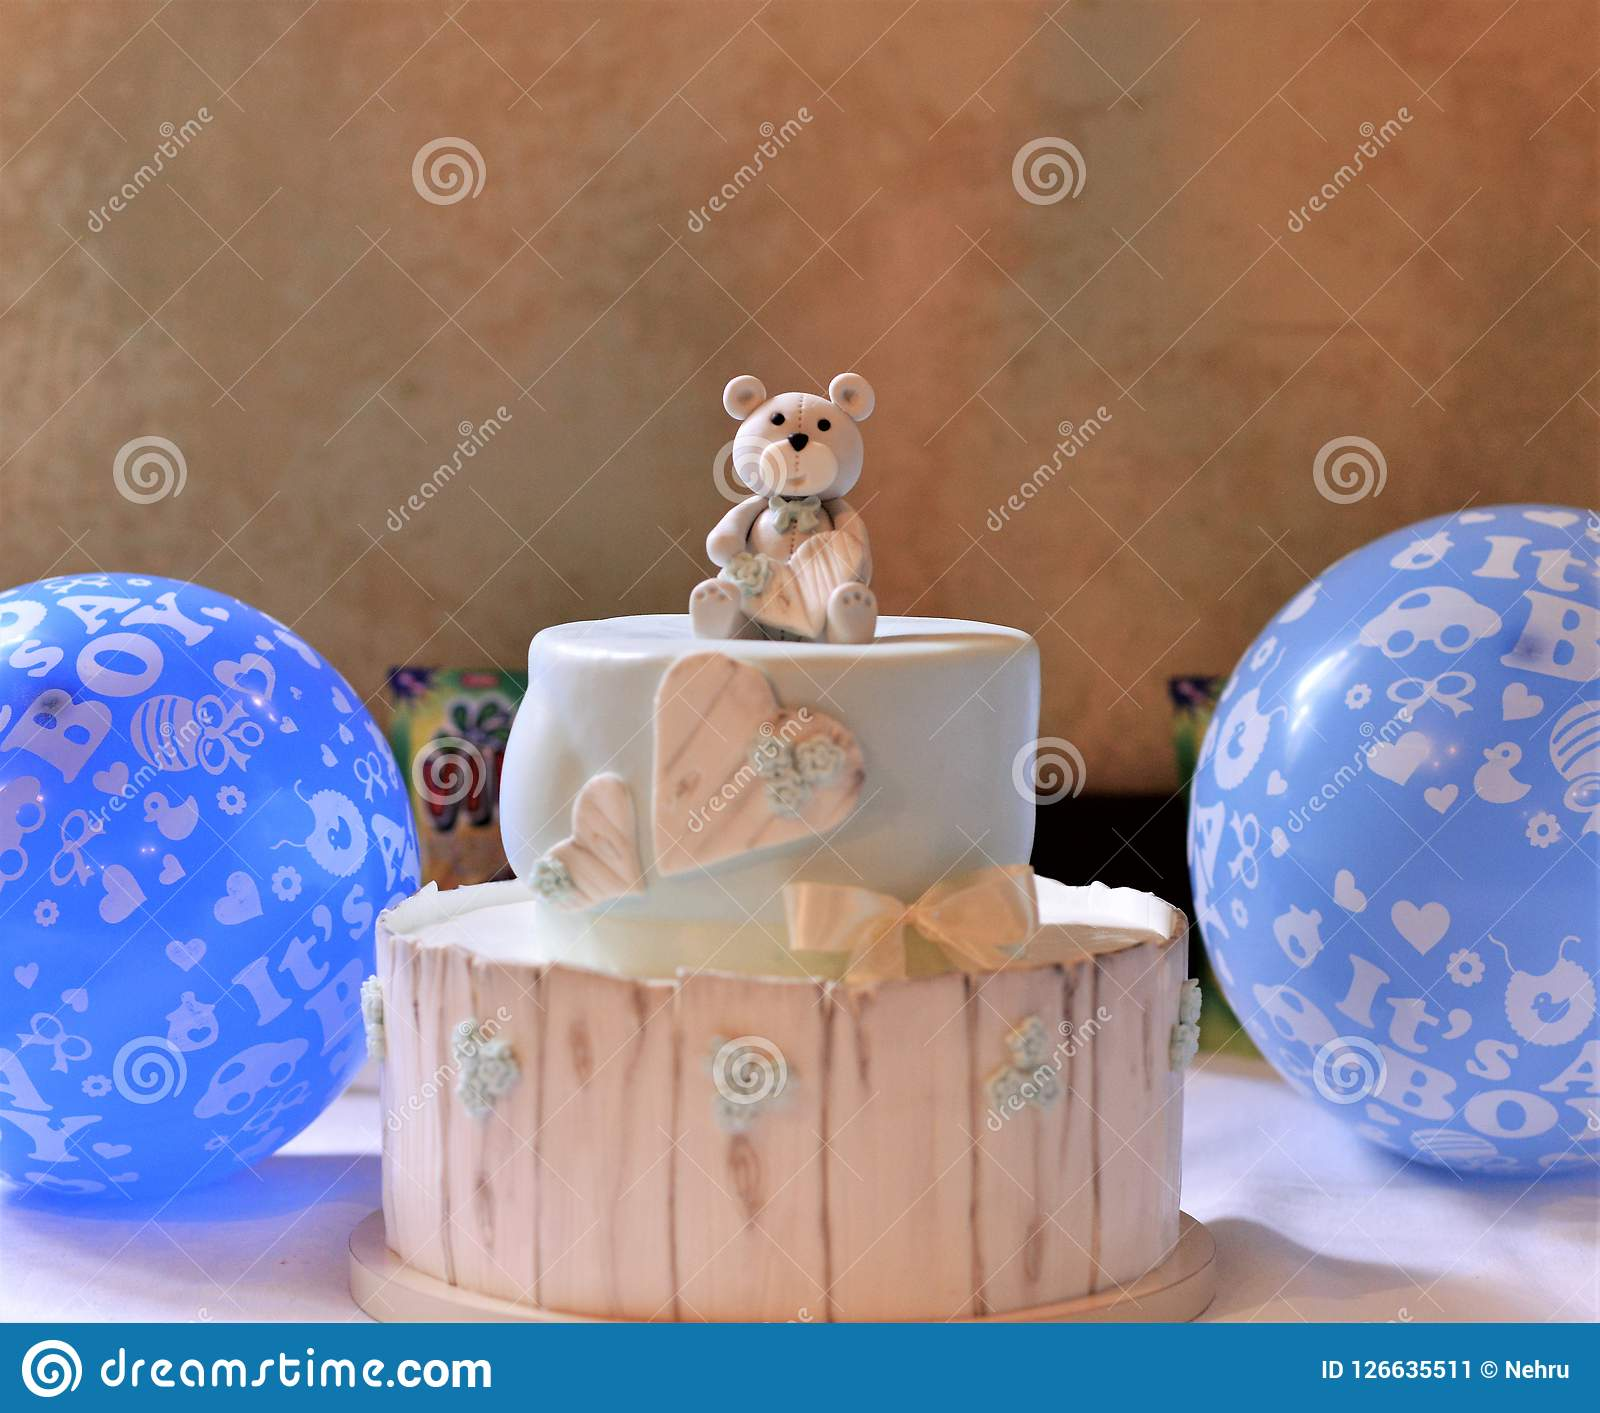 Baby Boy Birthday Cake On A Table Image Of